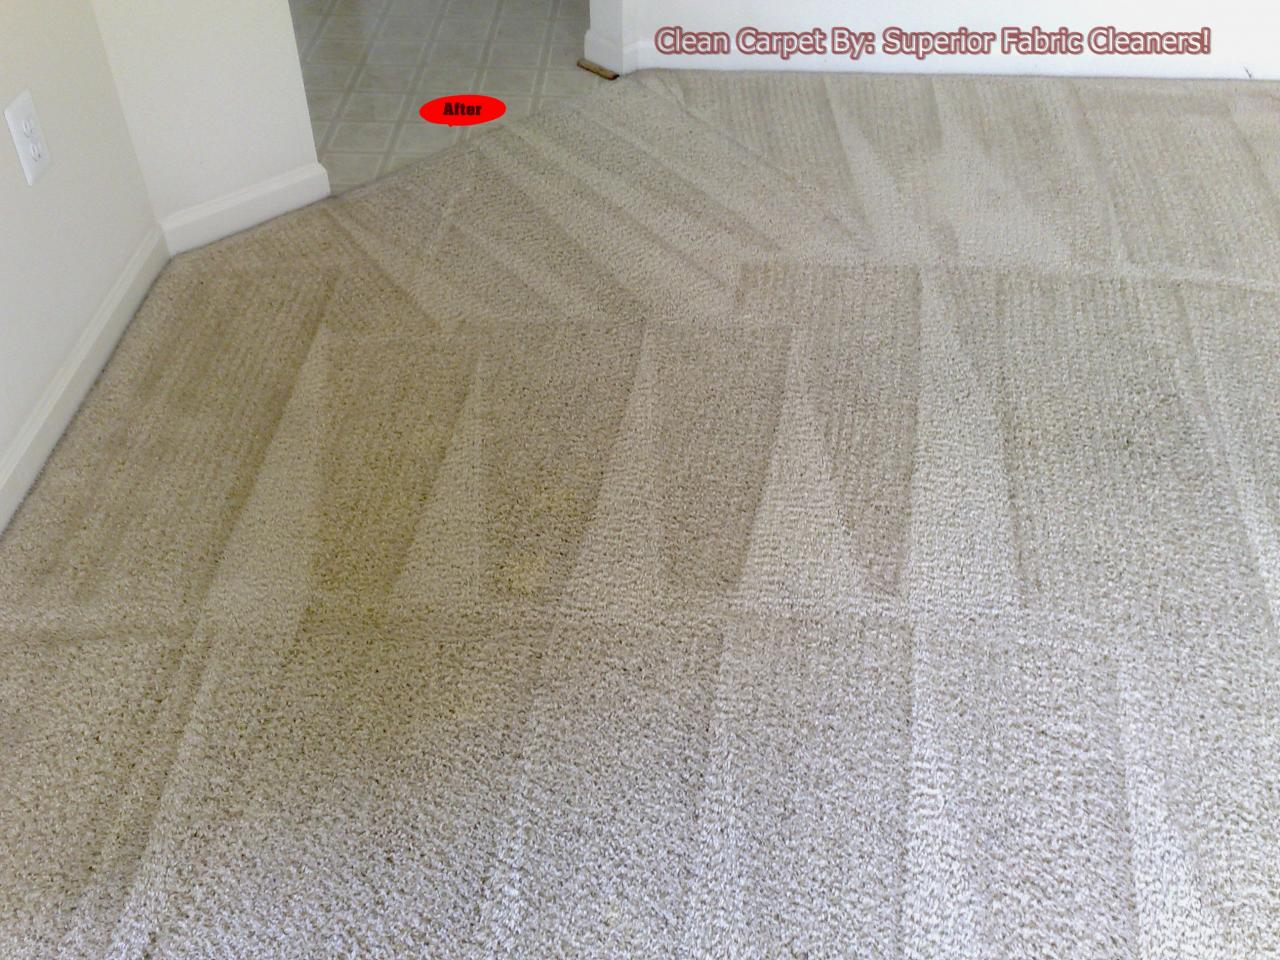 Superior Fabric Cleaners Carpet Cleaning Before Amp After